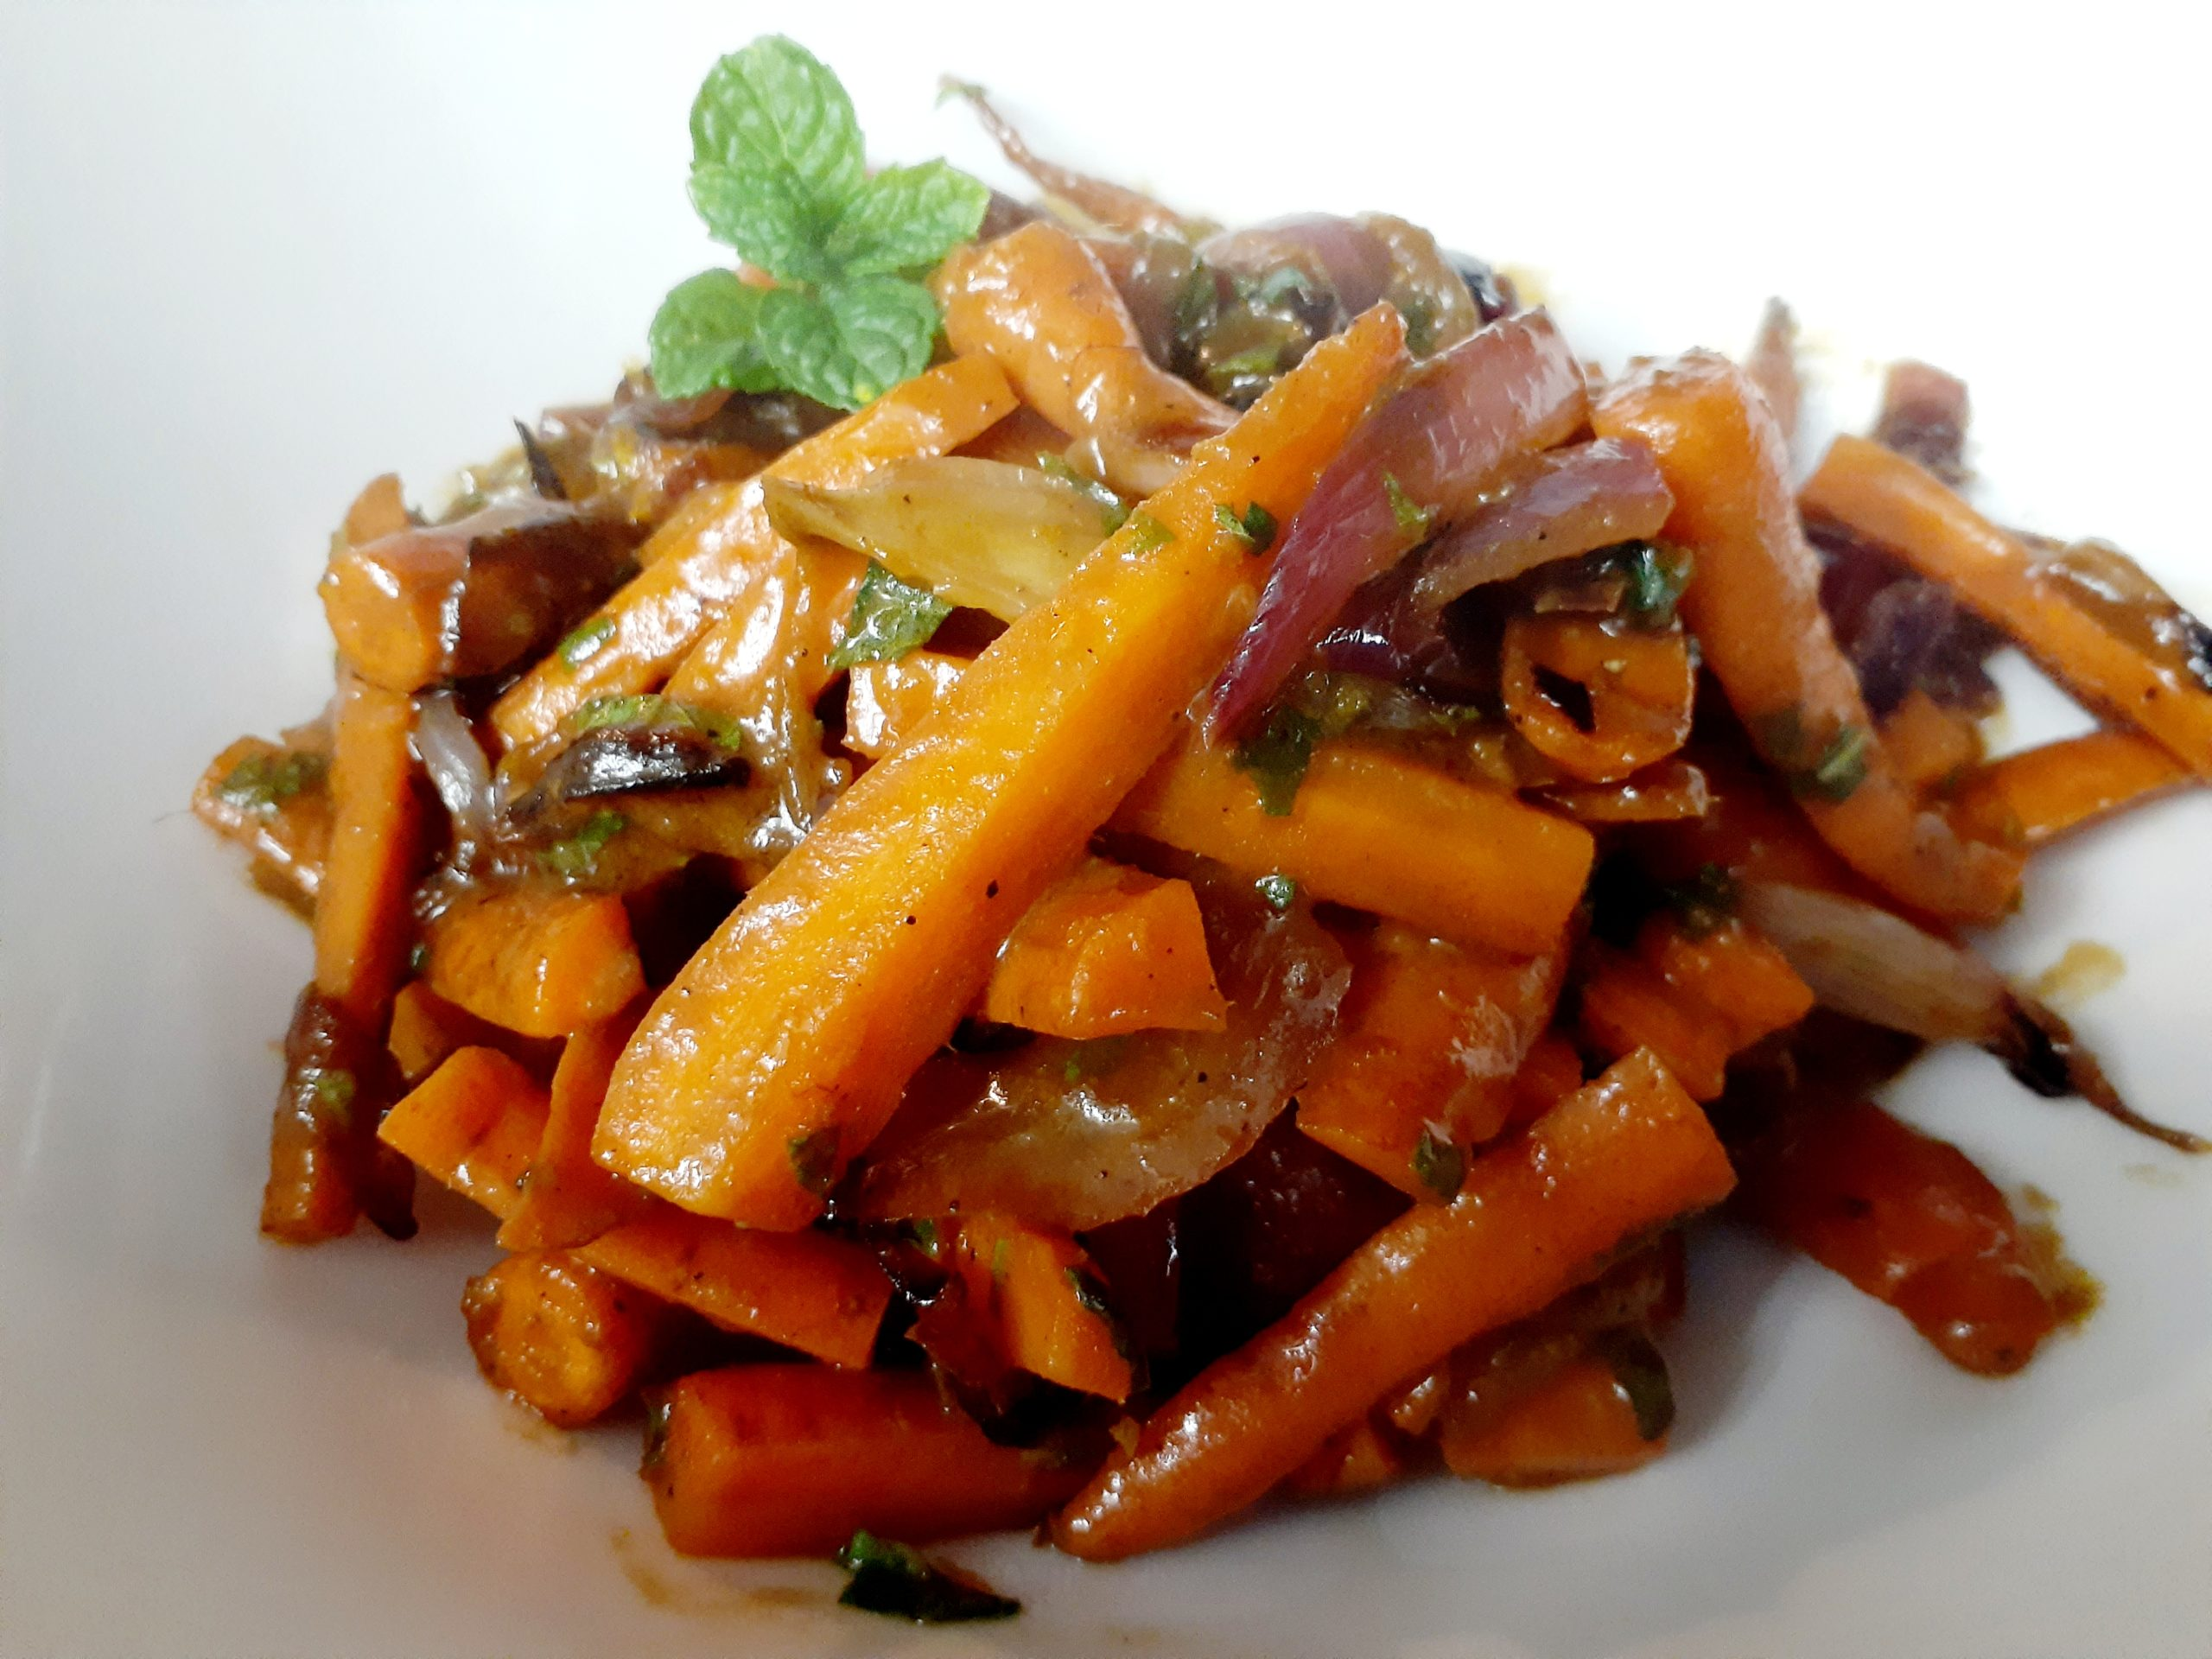 Glazed Carrots & Onions w/Mint by Stacey Amagrande